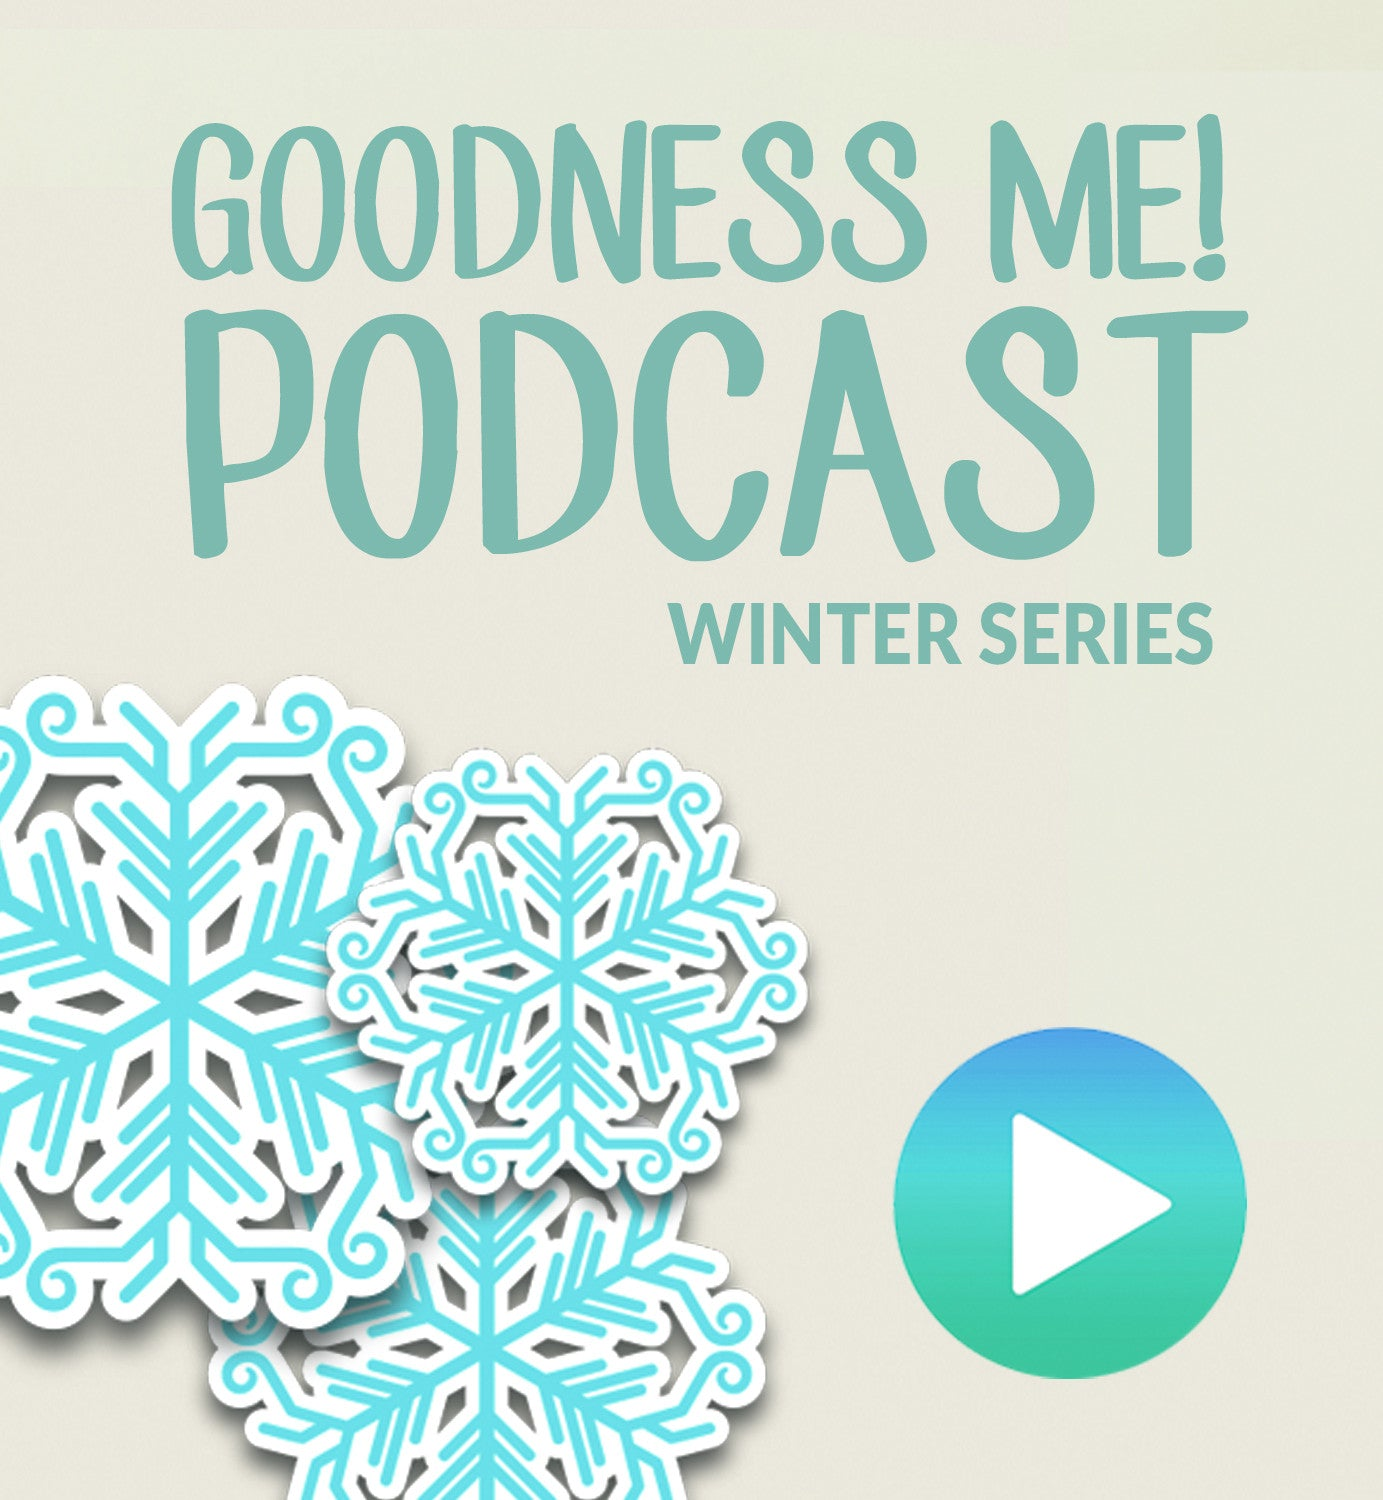 Jan 21 Goodness Me! Podcast - Part 1: What Makes a Good Probiotic?